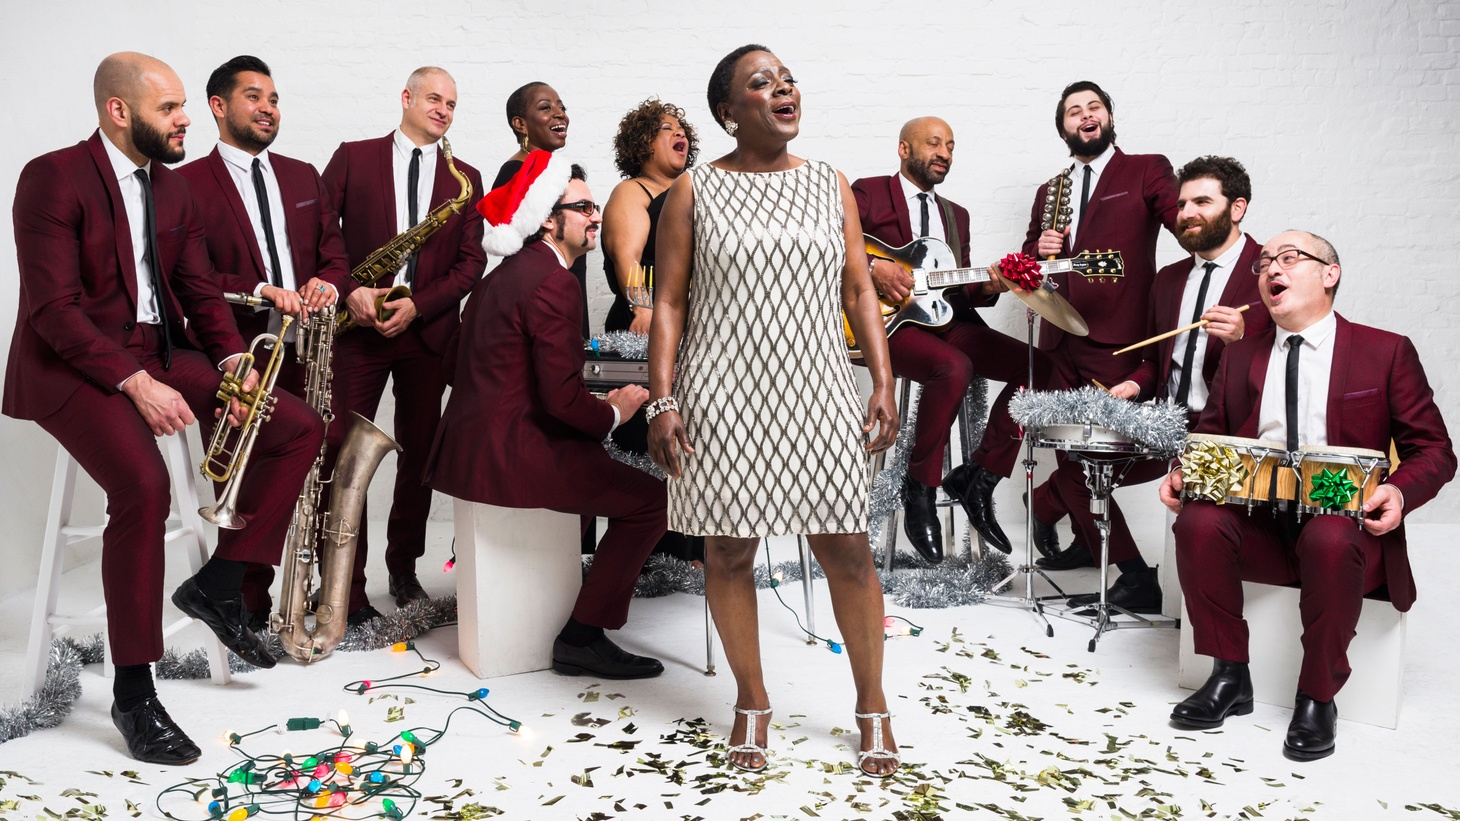 We've lost many important artists in 2016, including our beloved Sharon Jones.